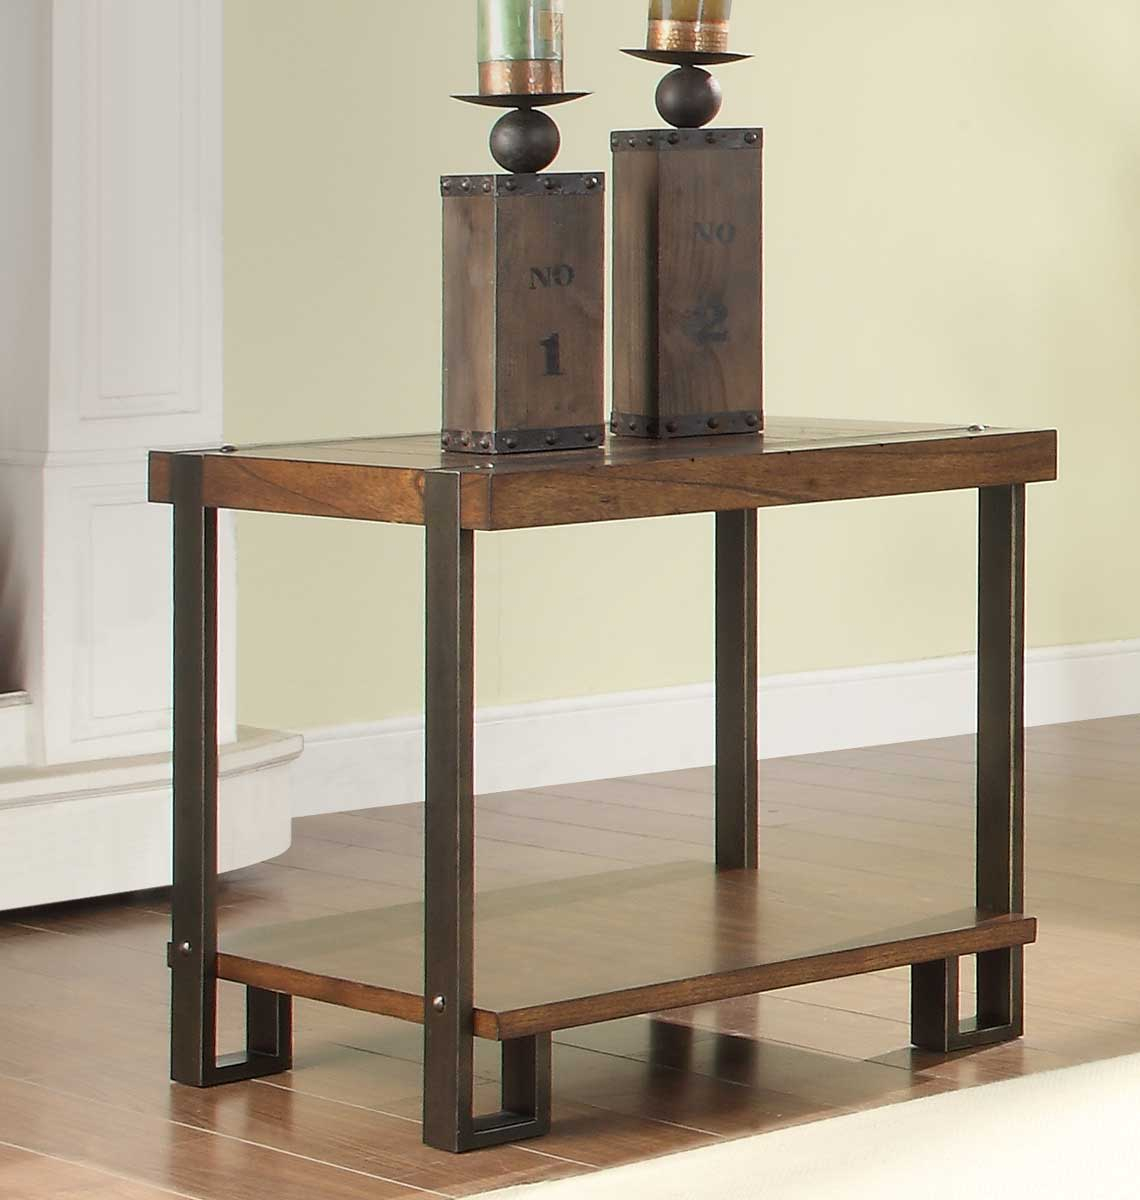 Homelegance 3438 04 Natural Brown Northwood End Table Intended For Most Up To Date Northwoods 3 Piece Dining Sets (Image 8 of 20)